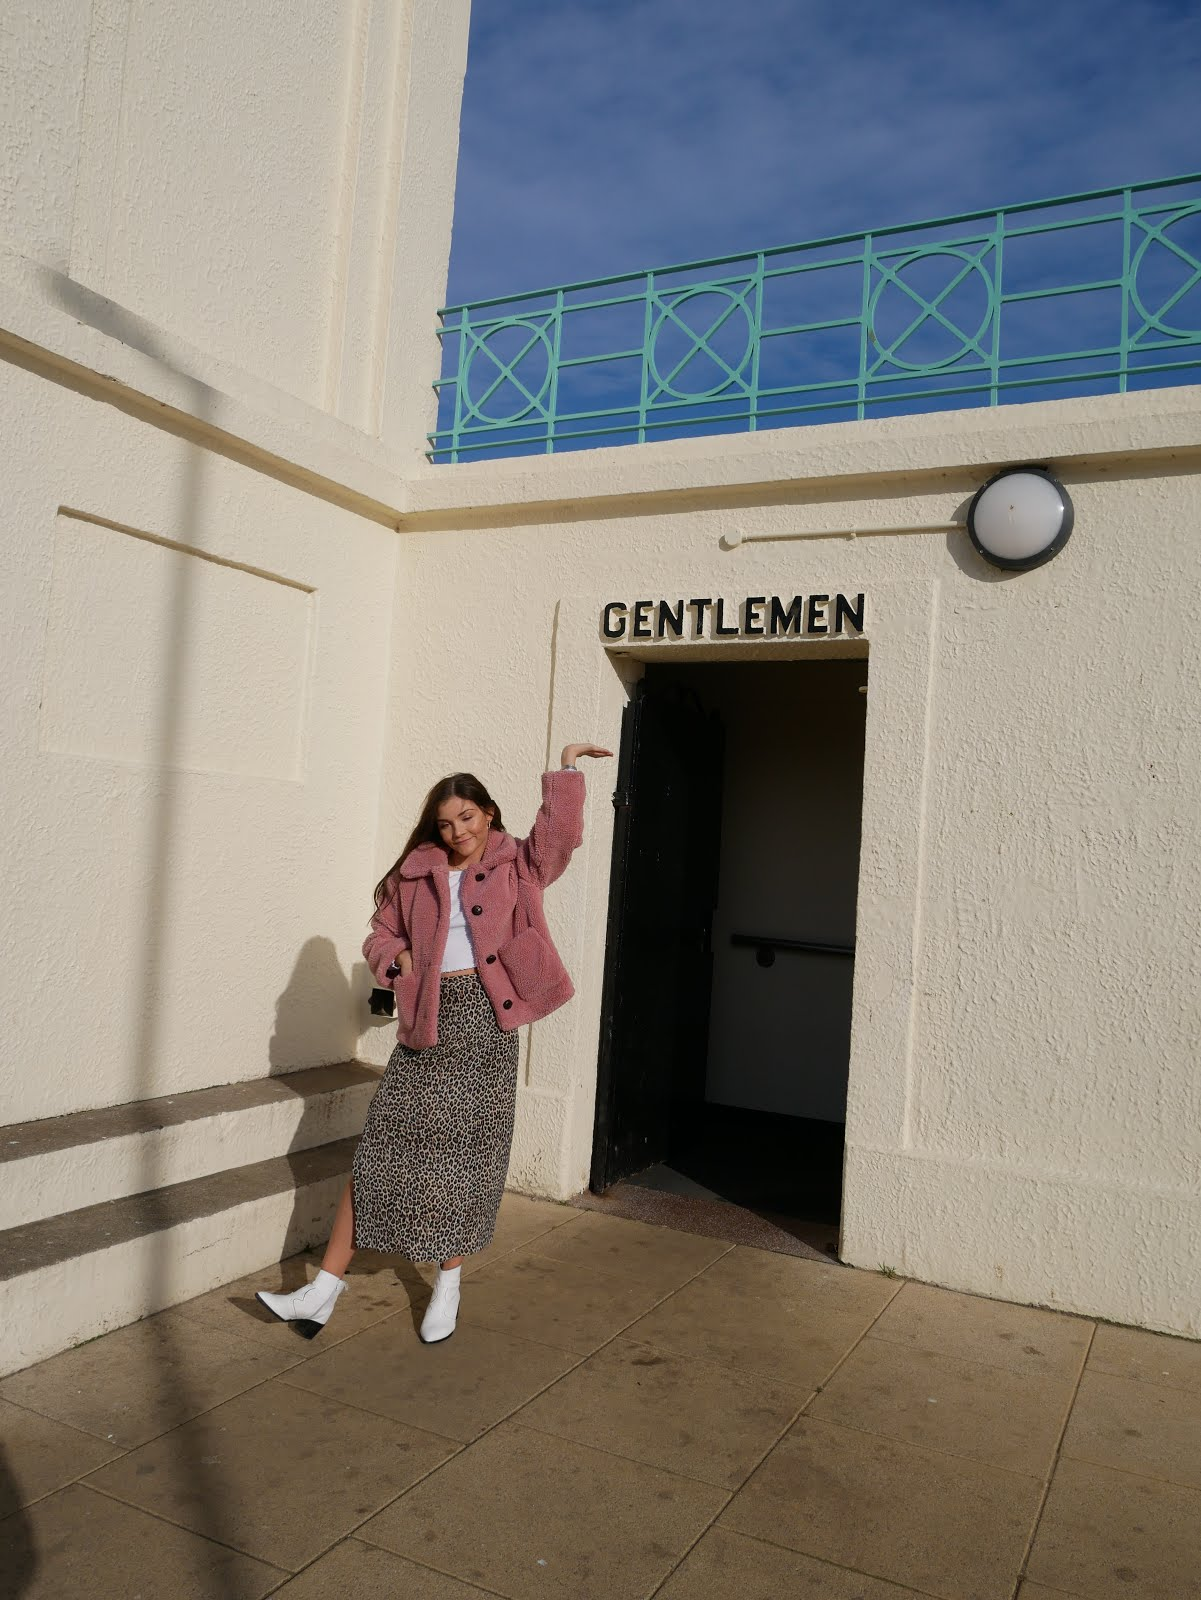 North East Fashion blogger outside retro toilets